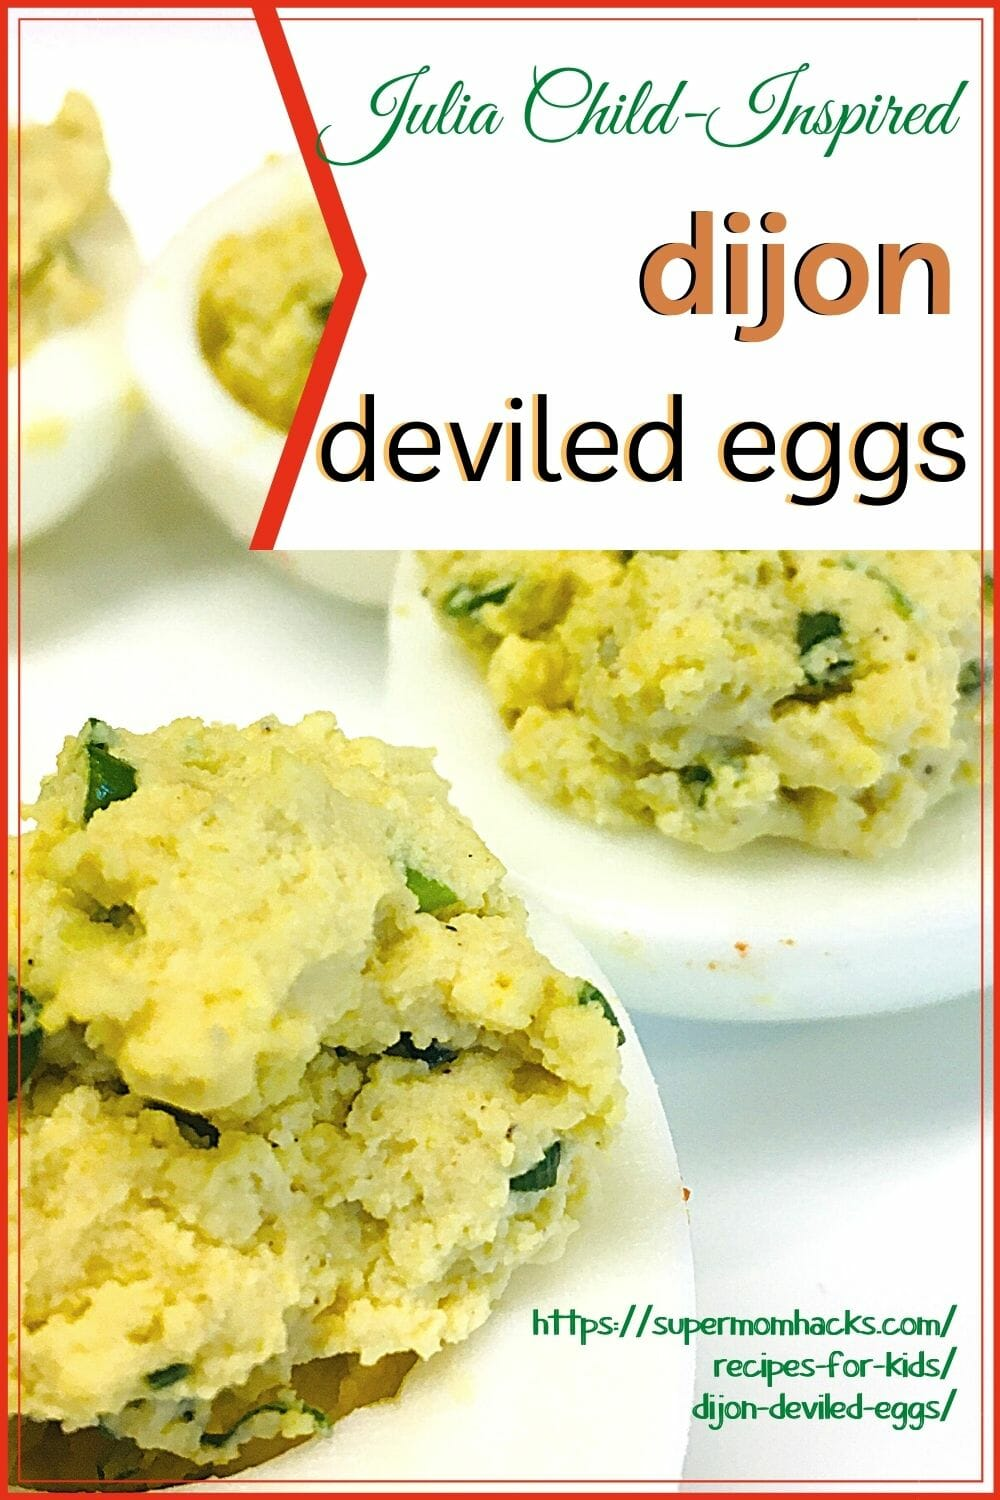 This delicious Dijon deviled eggs recipe is the perfect Easter appetizer - so easy that kids can make, yet elegant enough for holiday meals.